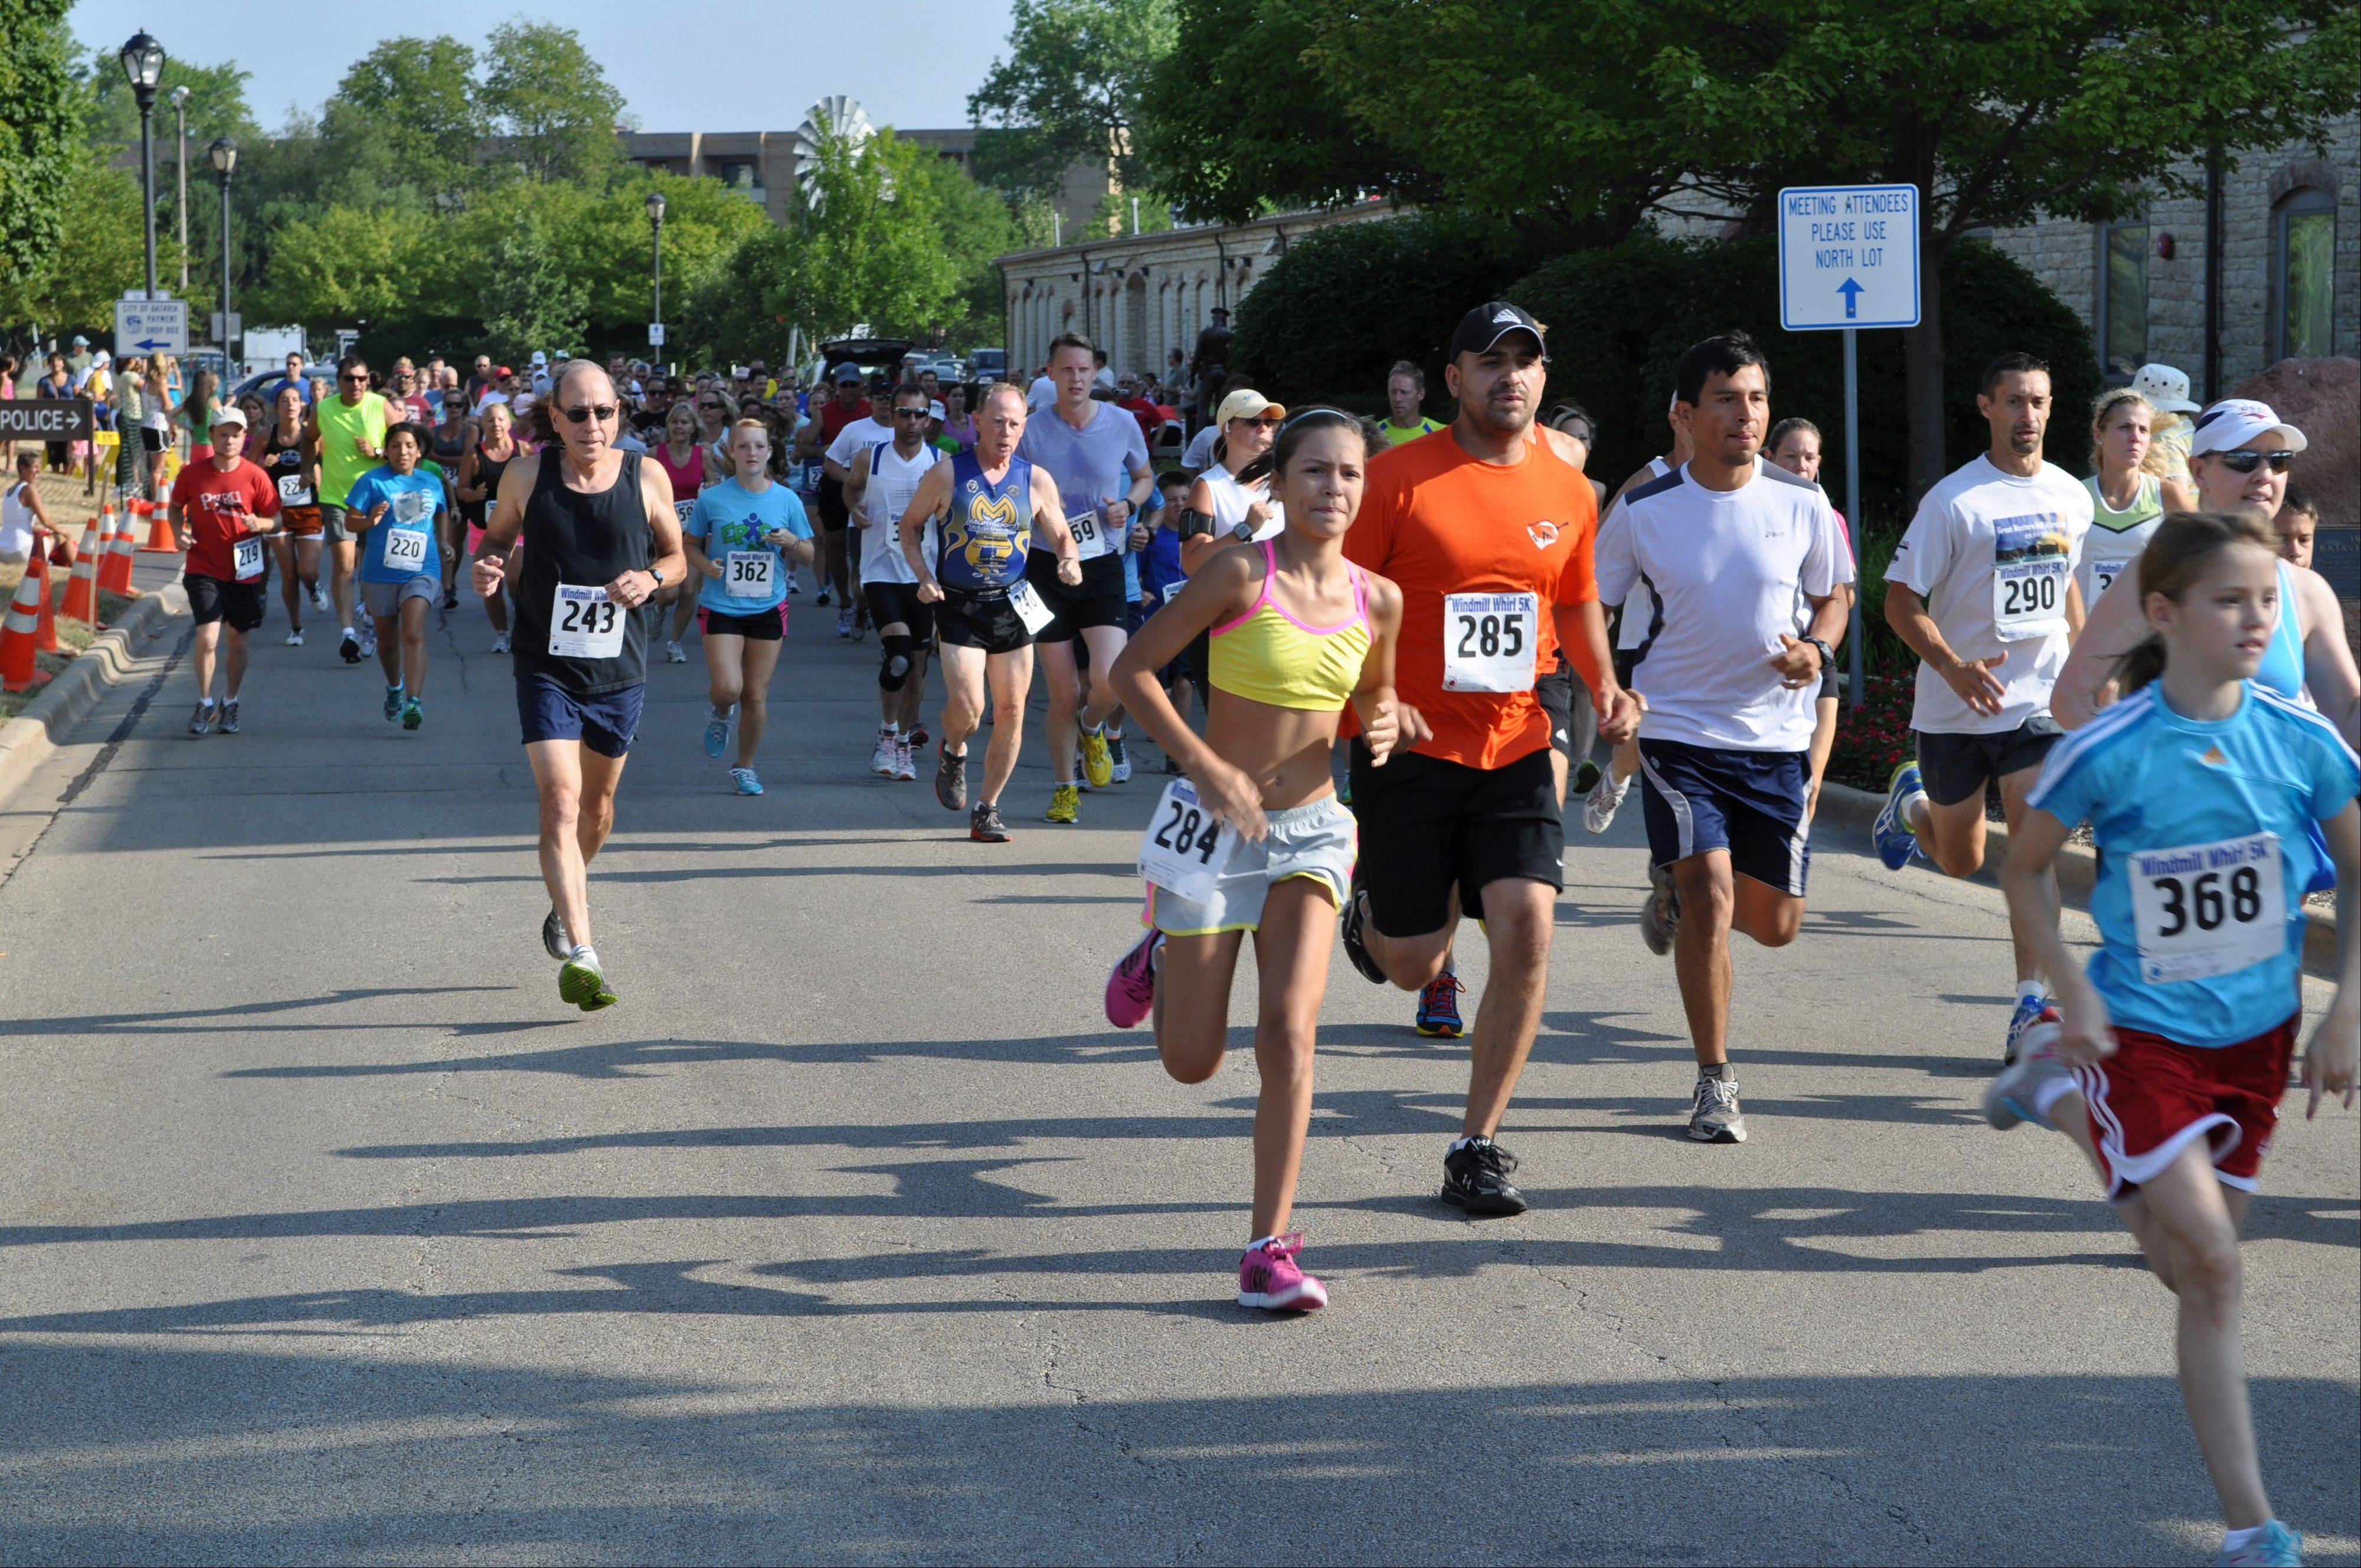 The 5K Windmill Whirl along the Fox River Trail will begin at Island Avenue. The annual race starts at 8:30 a.m. Saturday following the Youth 1-Mile Run at this year's Windmill City Festival in Batavia.